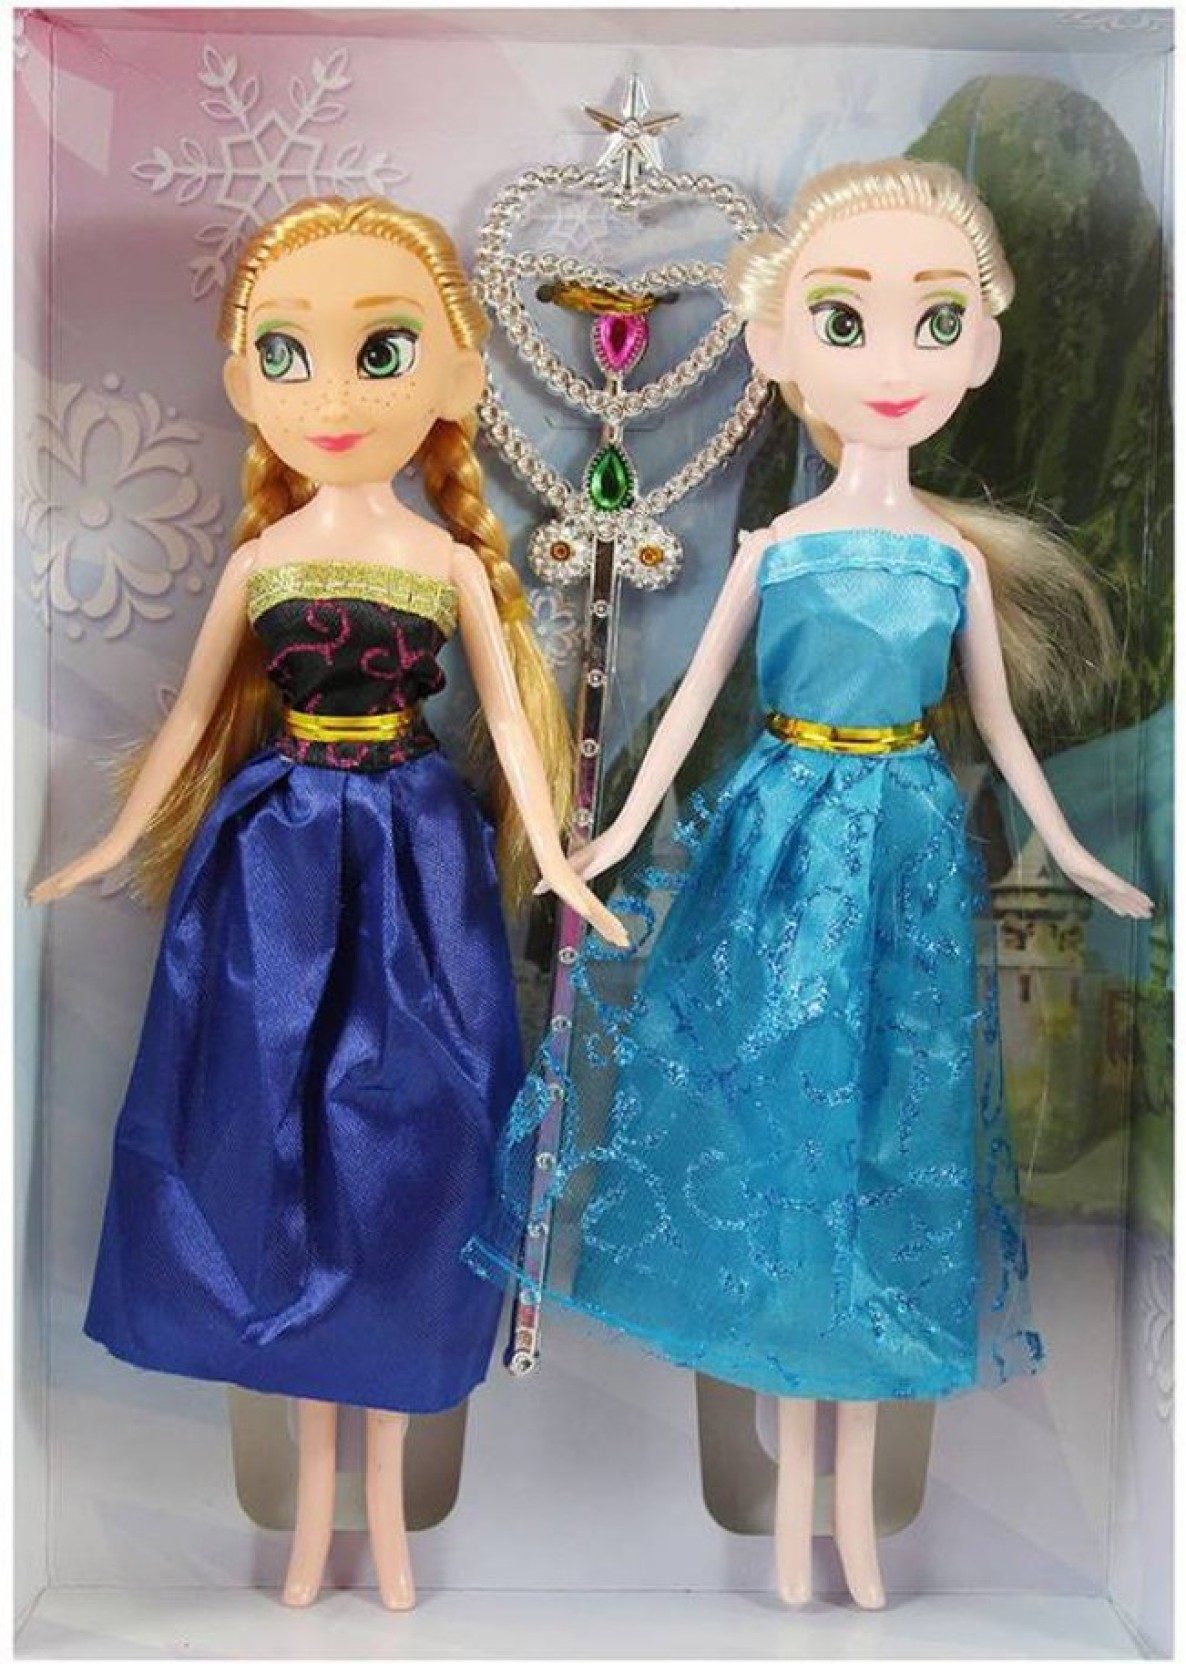 "Disney FROZEN ANNA DOLL CLASSIC COLLECTION 12/"" PRINCESS ELSA SISTER ORIGINAL"